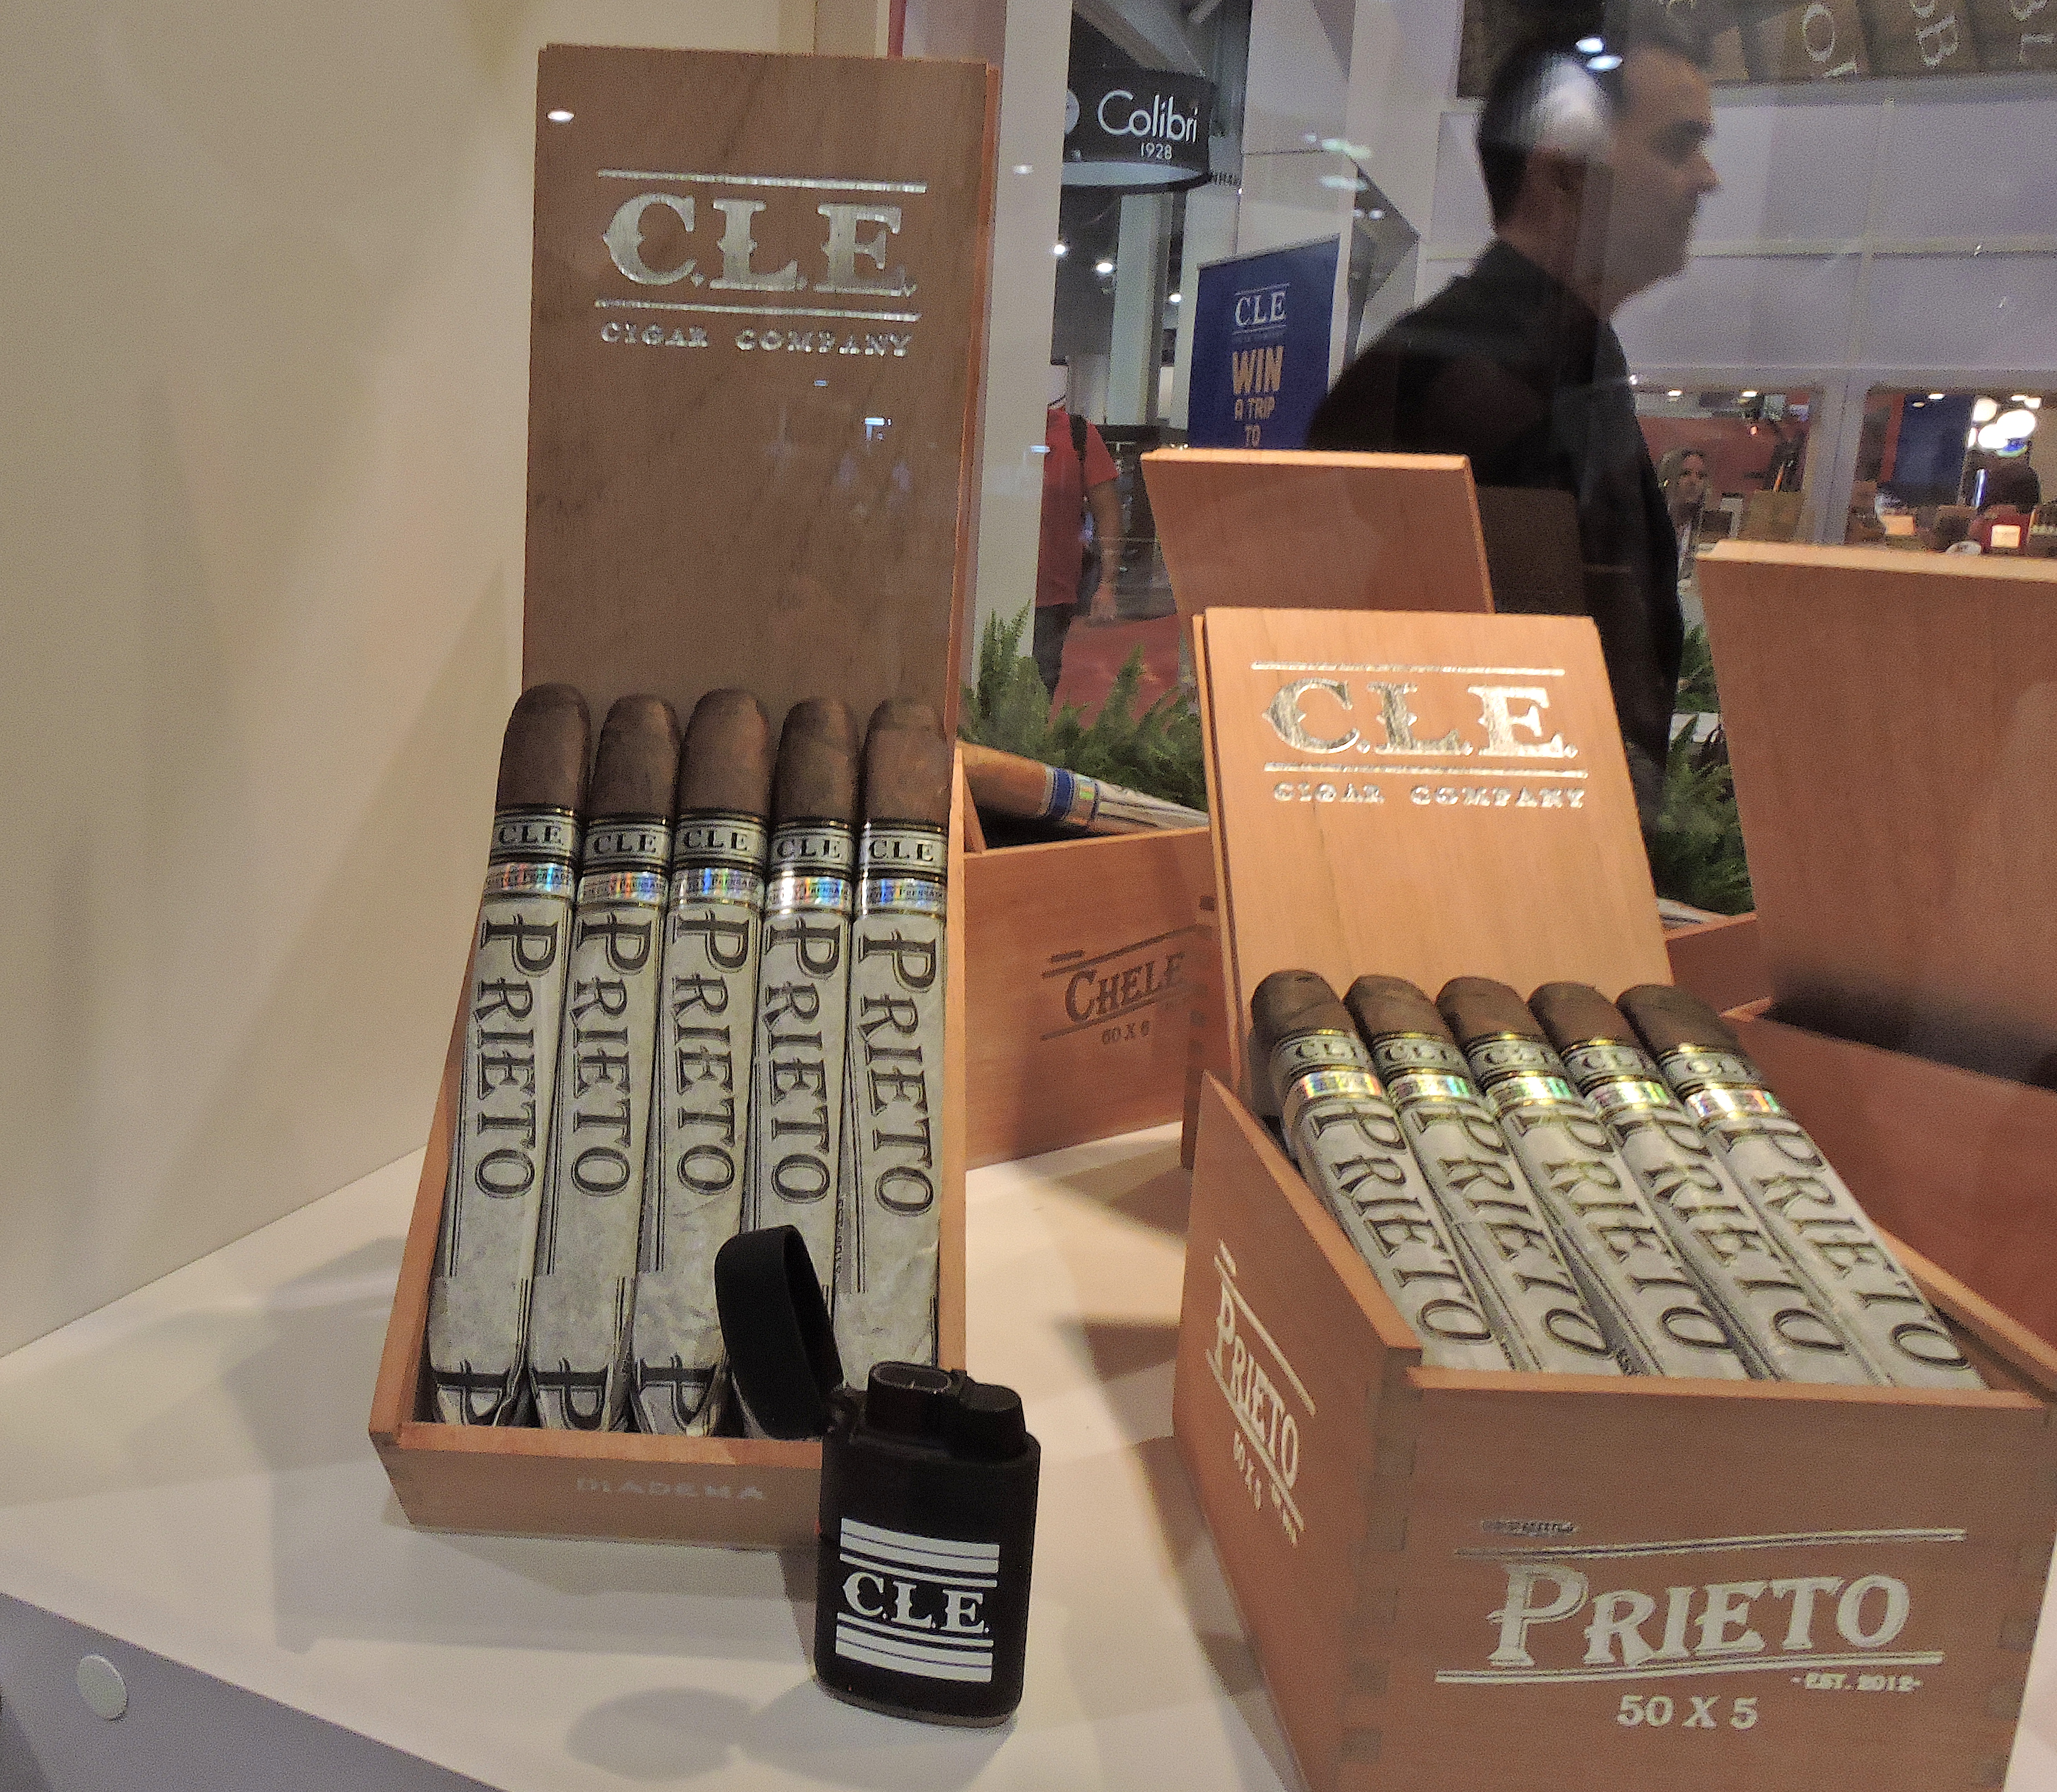 Feature Story: Spotlight on C.L.E. Cigar Company and Patoro Cigars at 2018 IPCPR